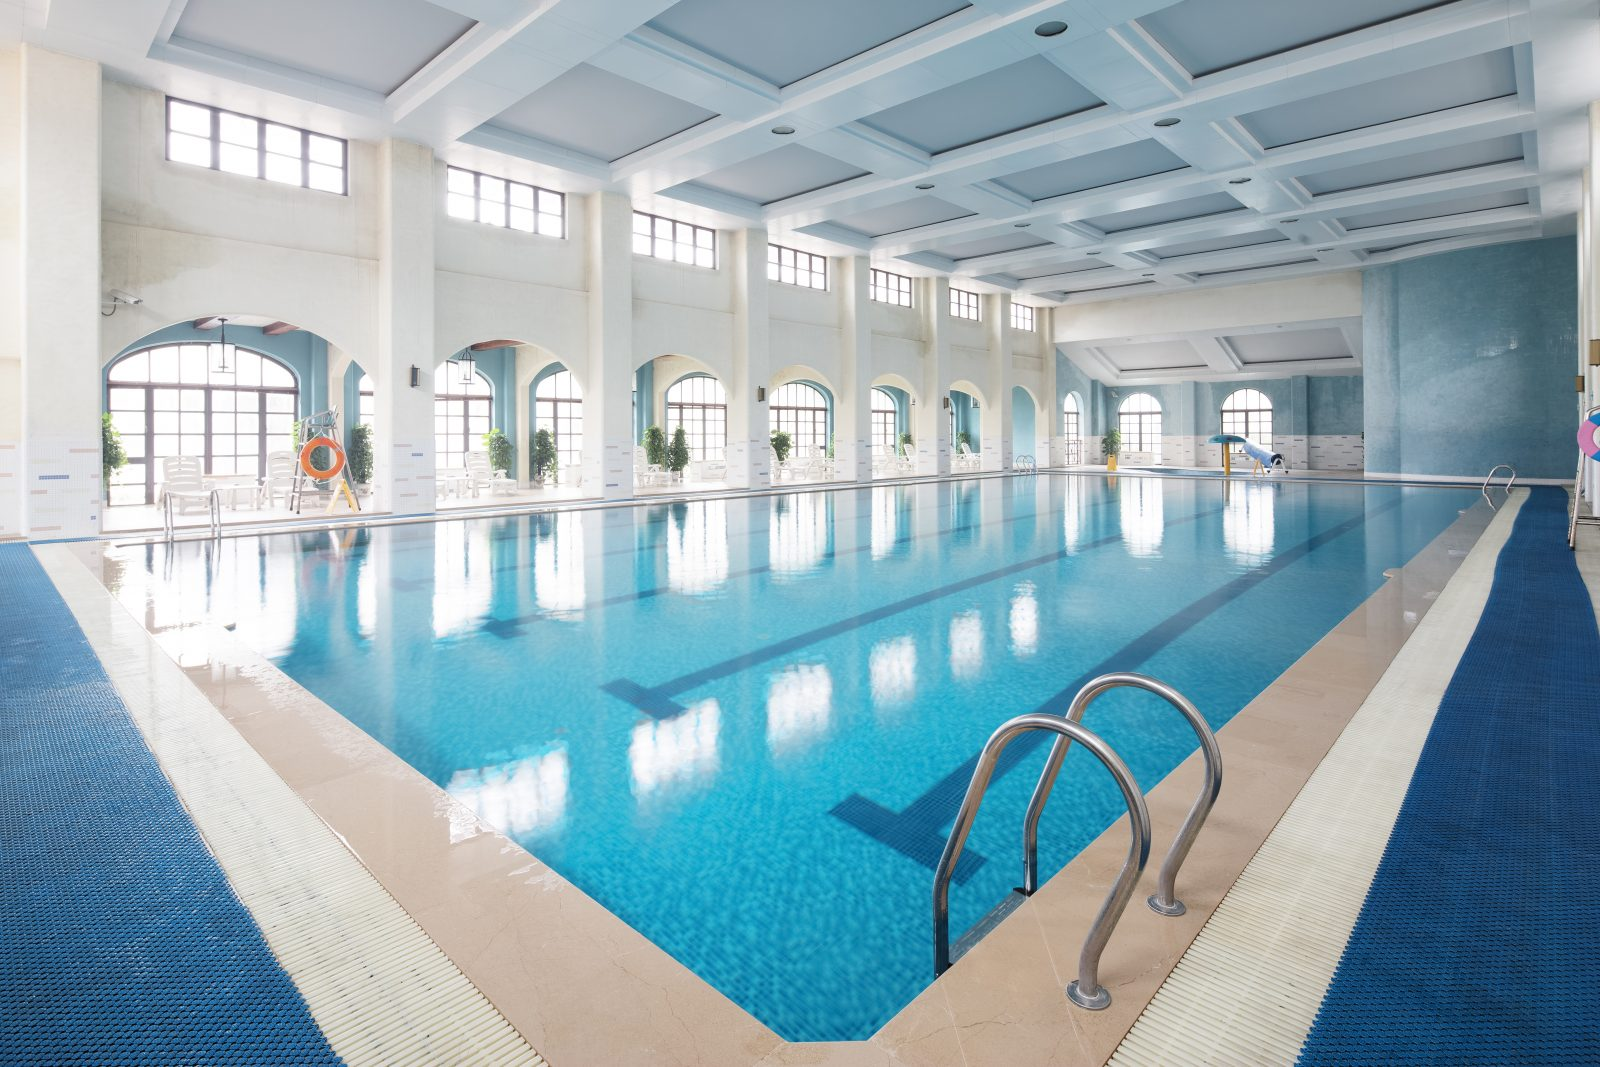 Swimming Pool And Spa Safety And Maintenance Resources Water Quality Health Council